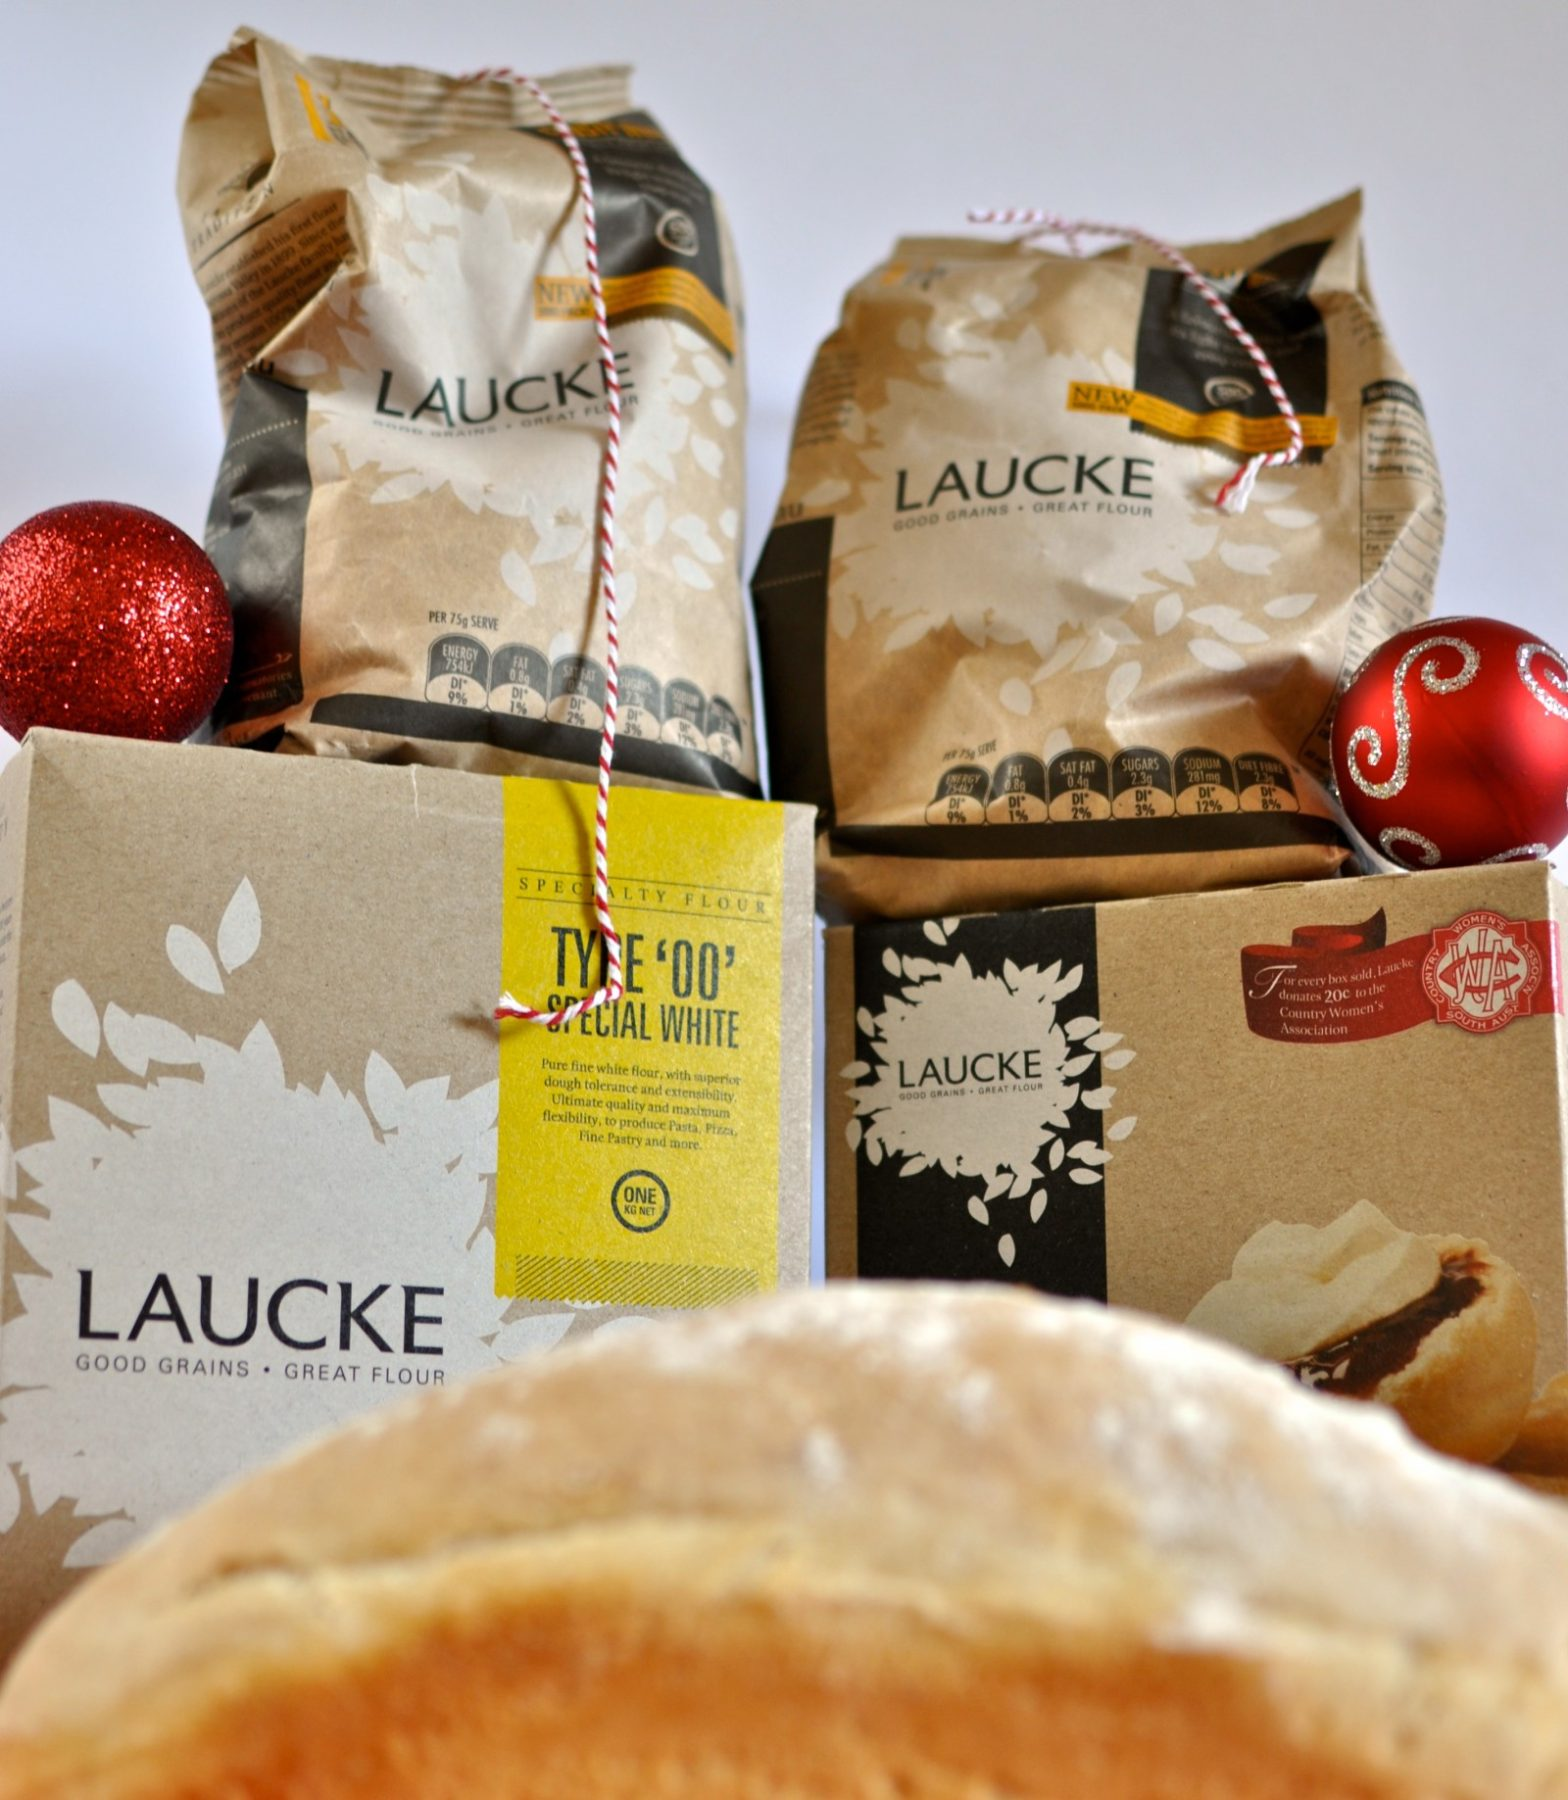 Laucke bread mixes